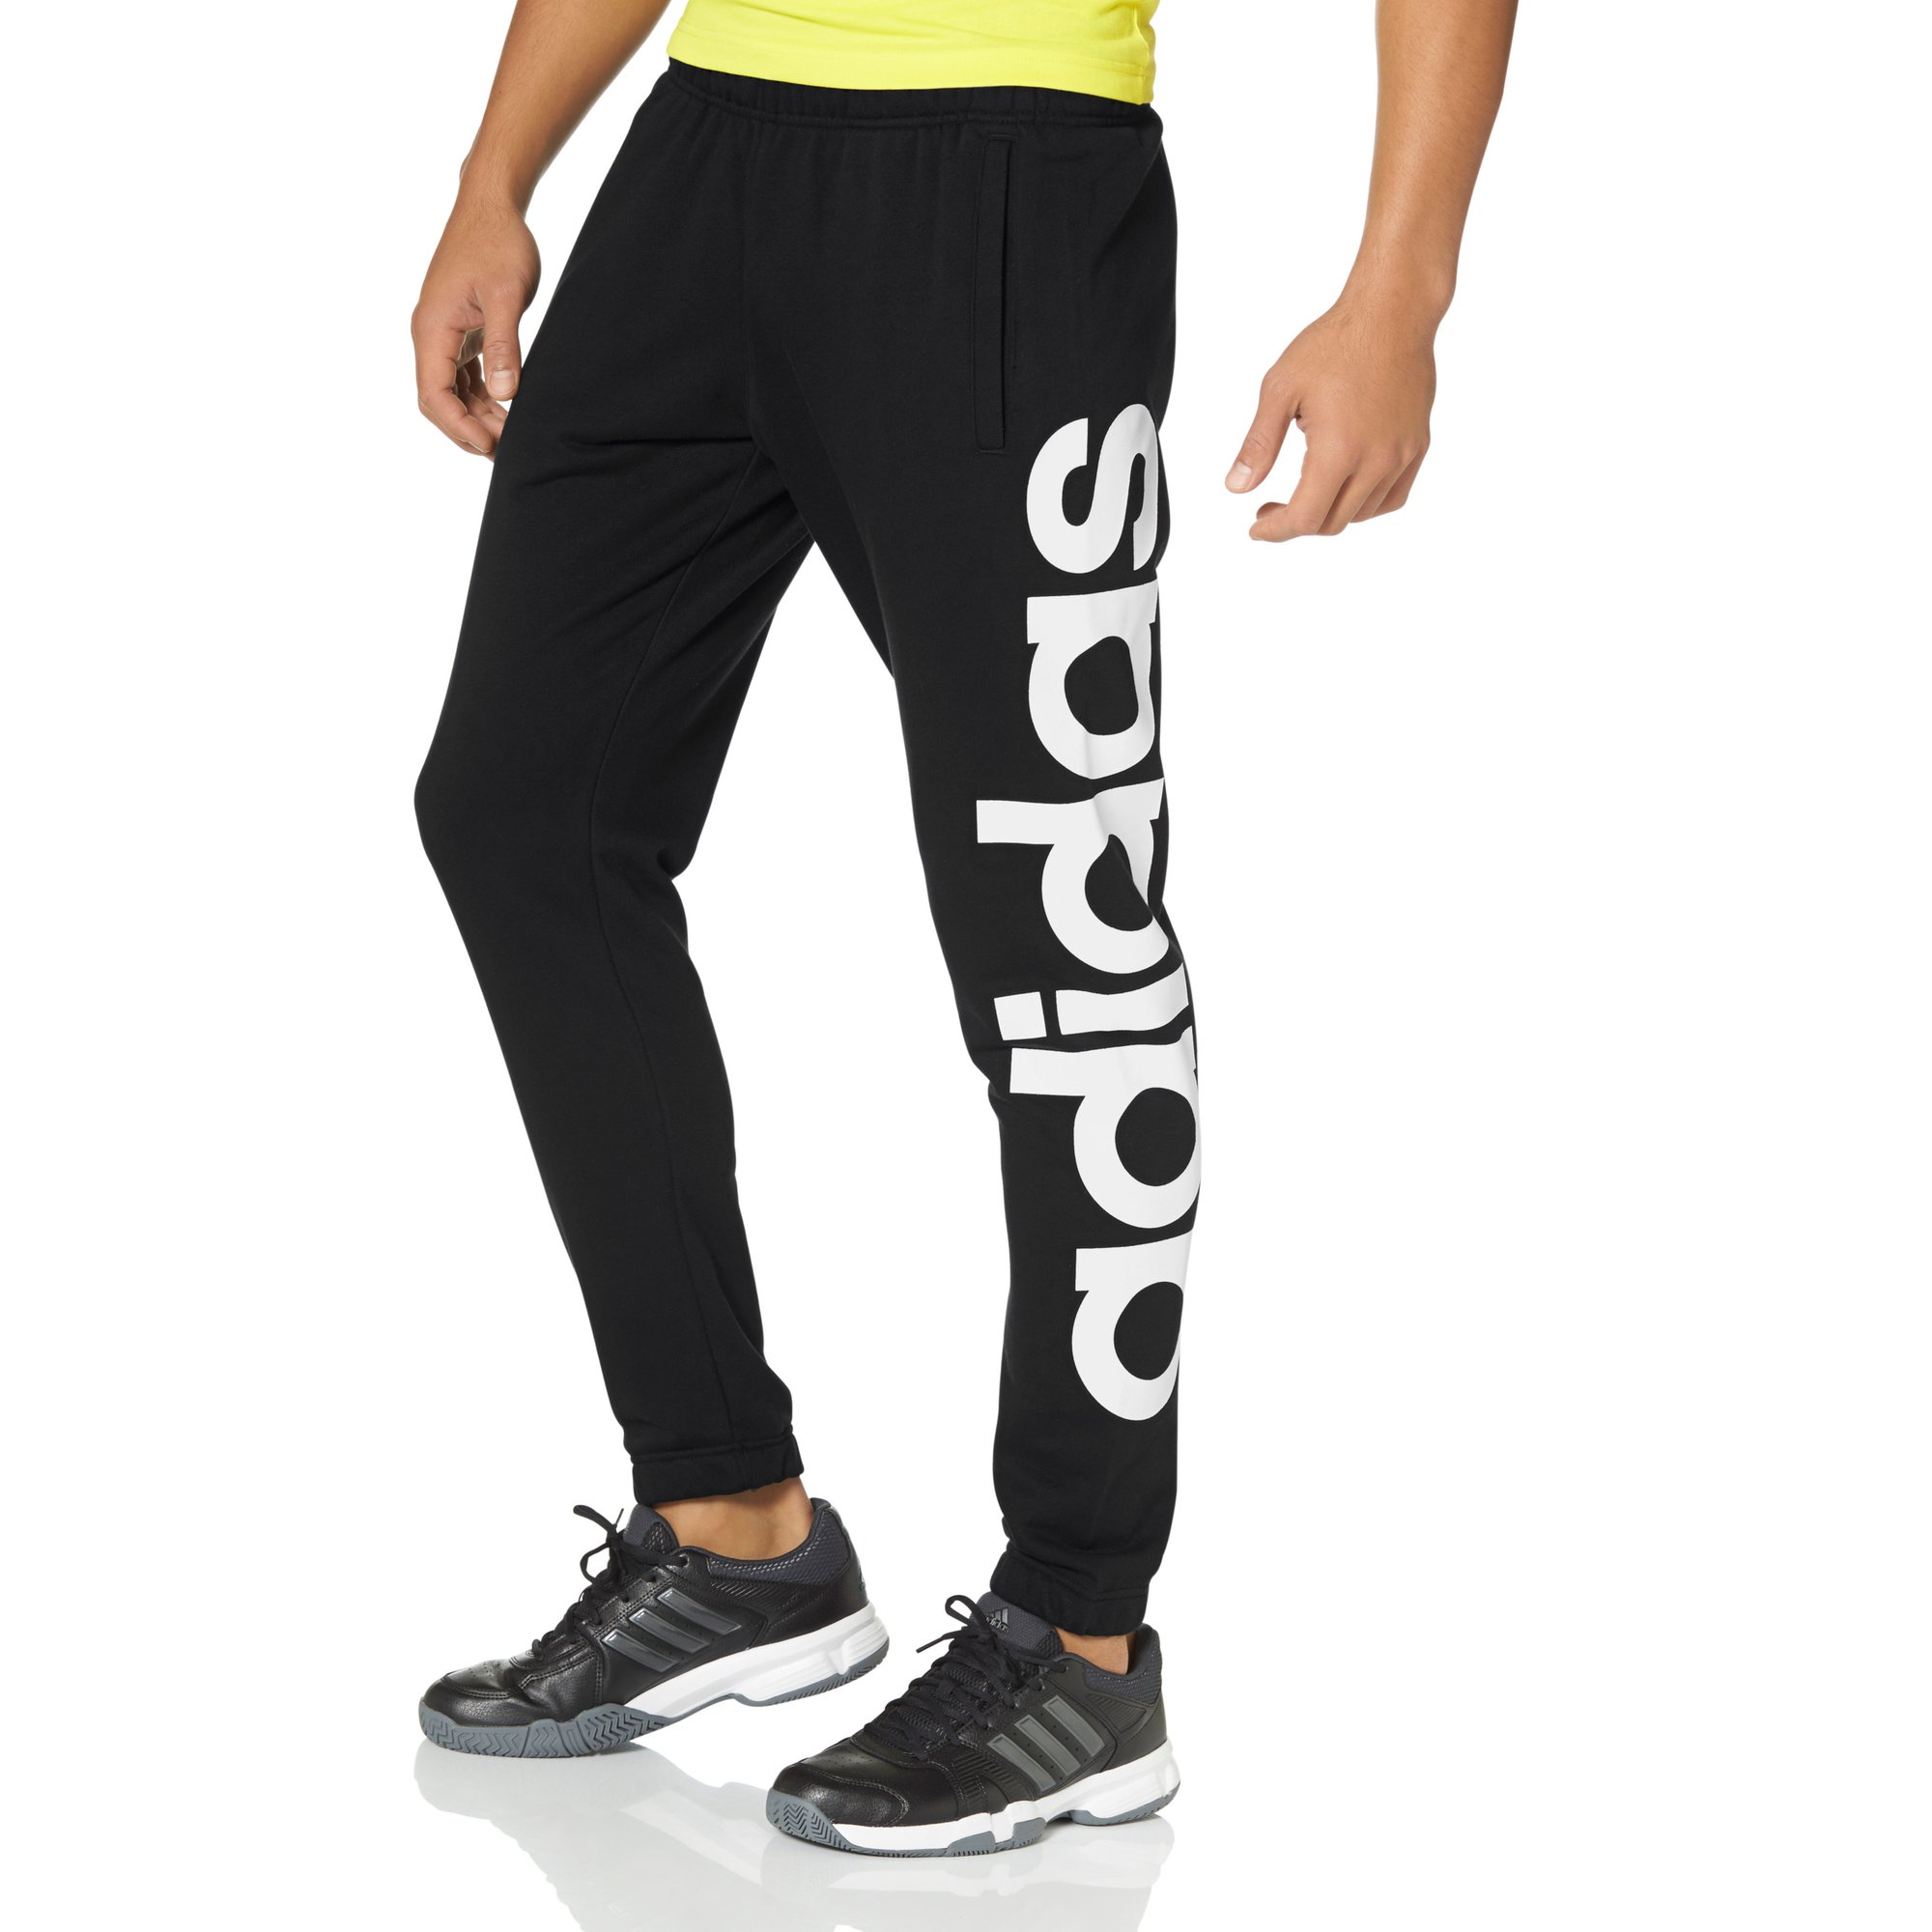 d7dea817fc8da9 ... bas de survetement adidas homme Rduction authentique adidas pantalon  jogging ...